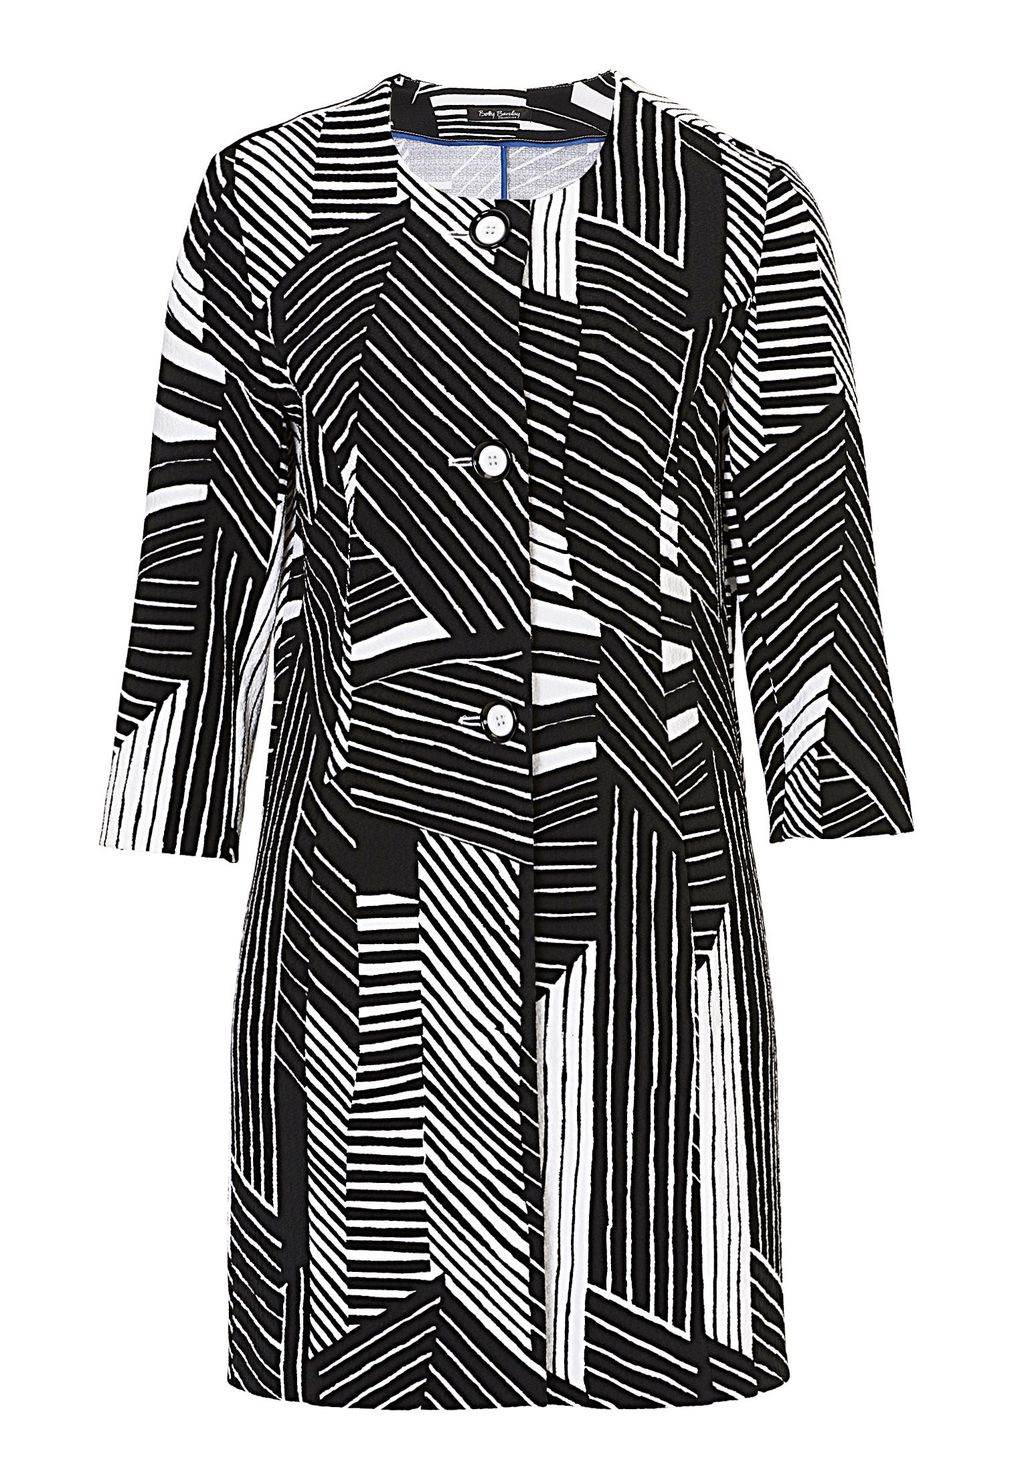 Graphic Print Long Jacket, Black/White - style: single breasted blazer; pattern: striped; collar: round collar/collarless; length: below the bottom; secondary colour: white; predominant colour: black; fit: tailored/fitted; fibres: polyester/polyamide - stretch; sleeve length: 3/4 length; sleeve style: standard; trends: monochrome, graphic stripes; collar break: high; pattern type: fabric; texture group: woven light midweight; occasions: creative work; pattern size: big & busy (top); season: s/s 2016; wardrobe: investment